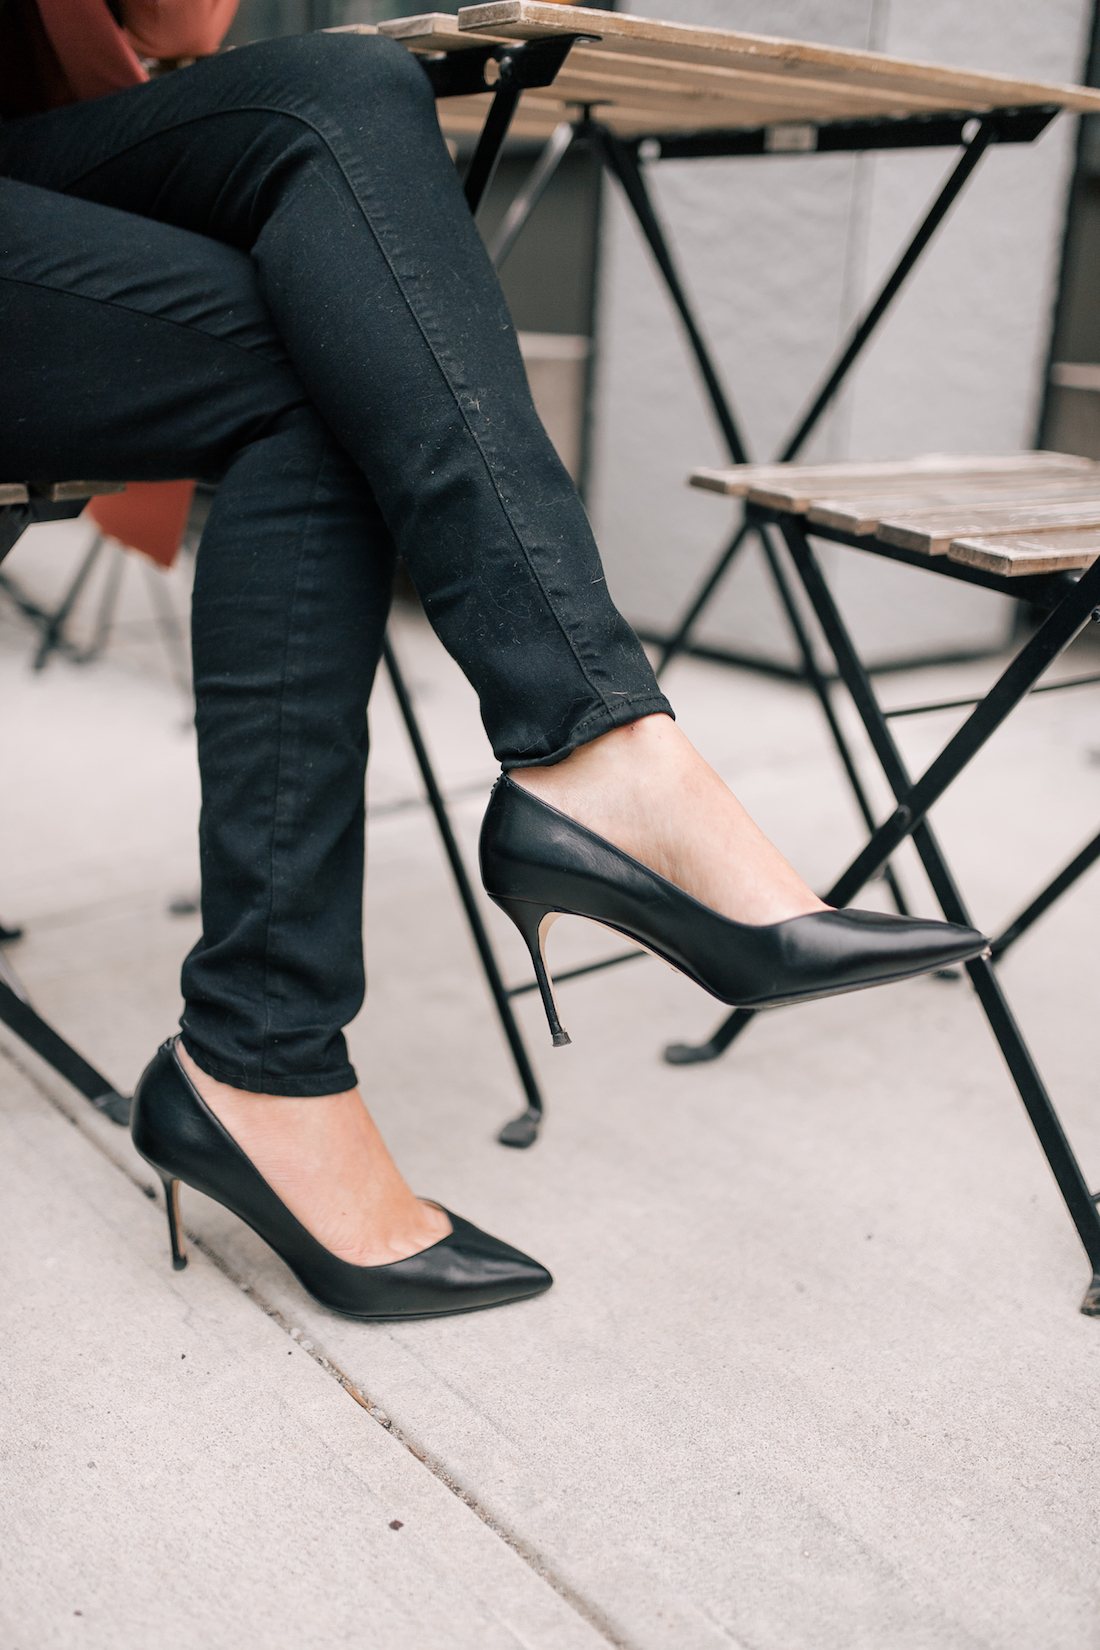 Sarah Flint Heels (take $50 off your first pair with code GRACE50)